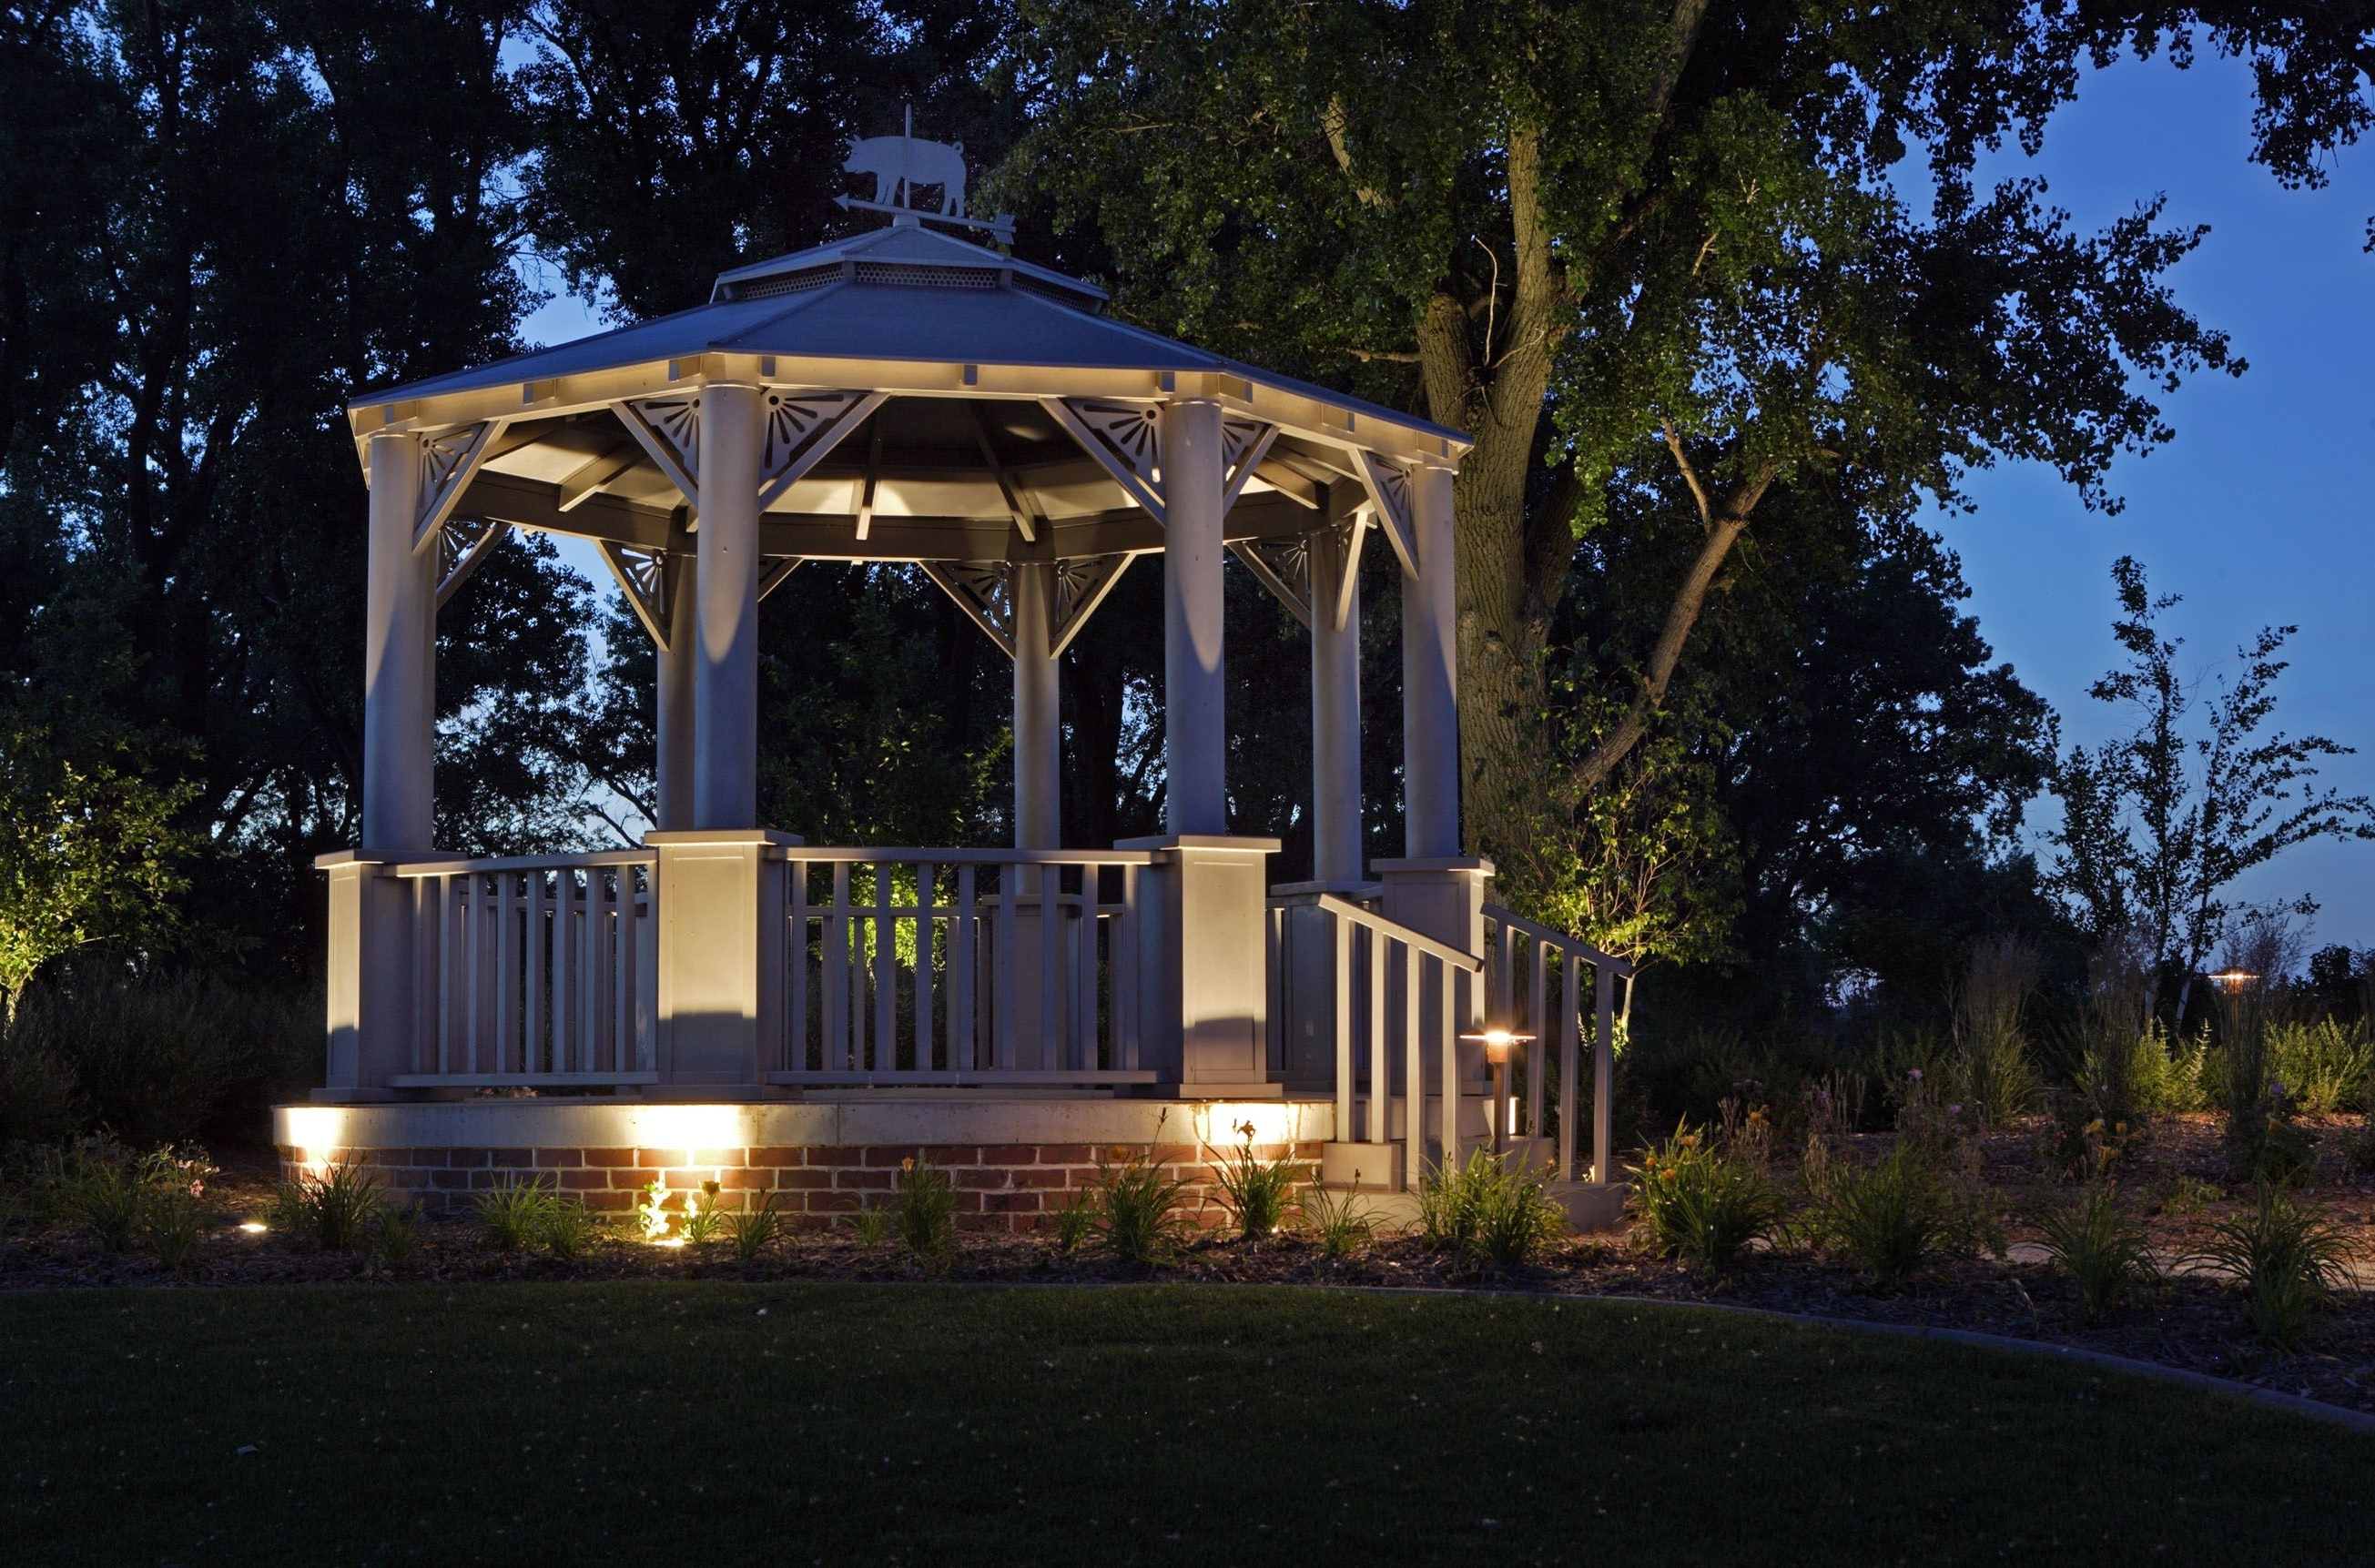 2019 Outdoor Gazebo Lanterns Pertaining To 43+ Gorgeous And Easy Diy Outdoor Lighting Ideas (View 14 of 20)